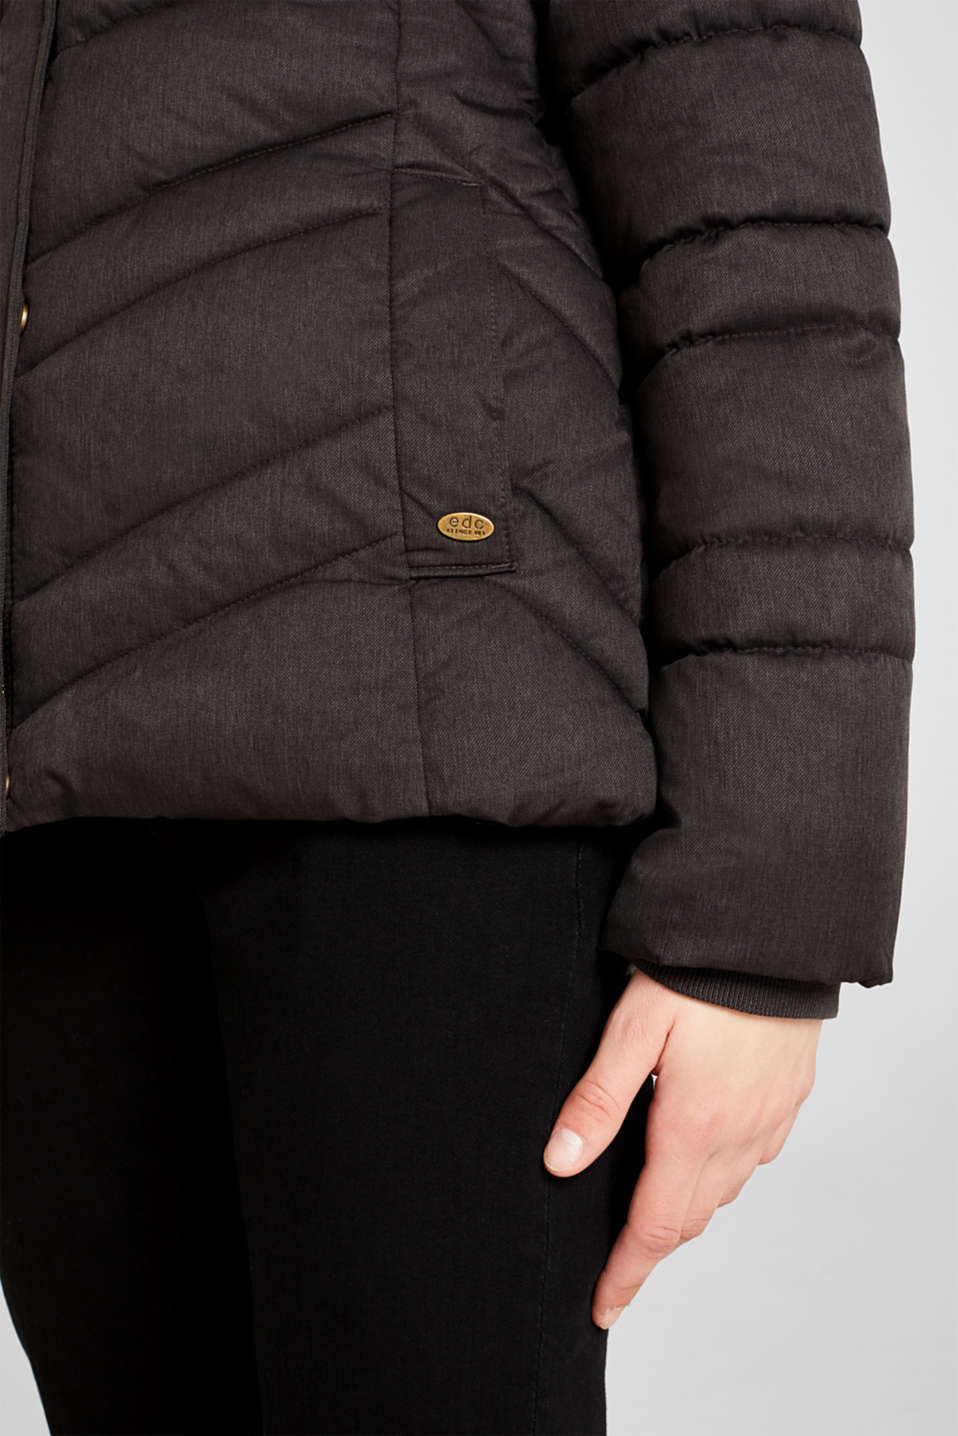 Jackets outdoor woven, ANTHRACITE 5, detail image number 6